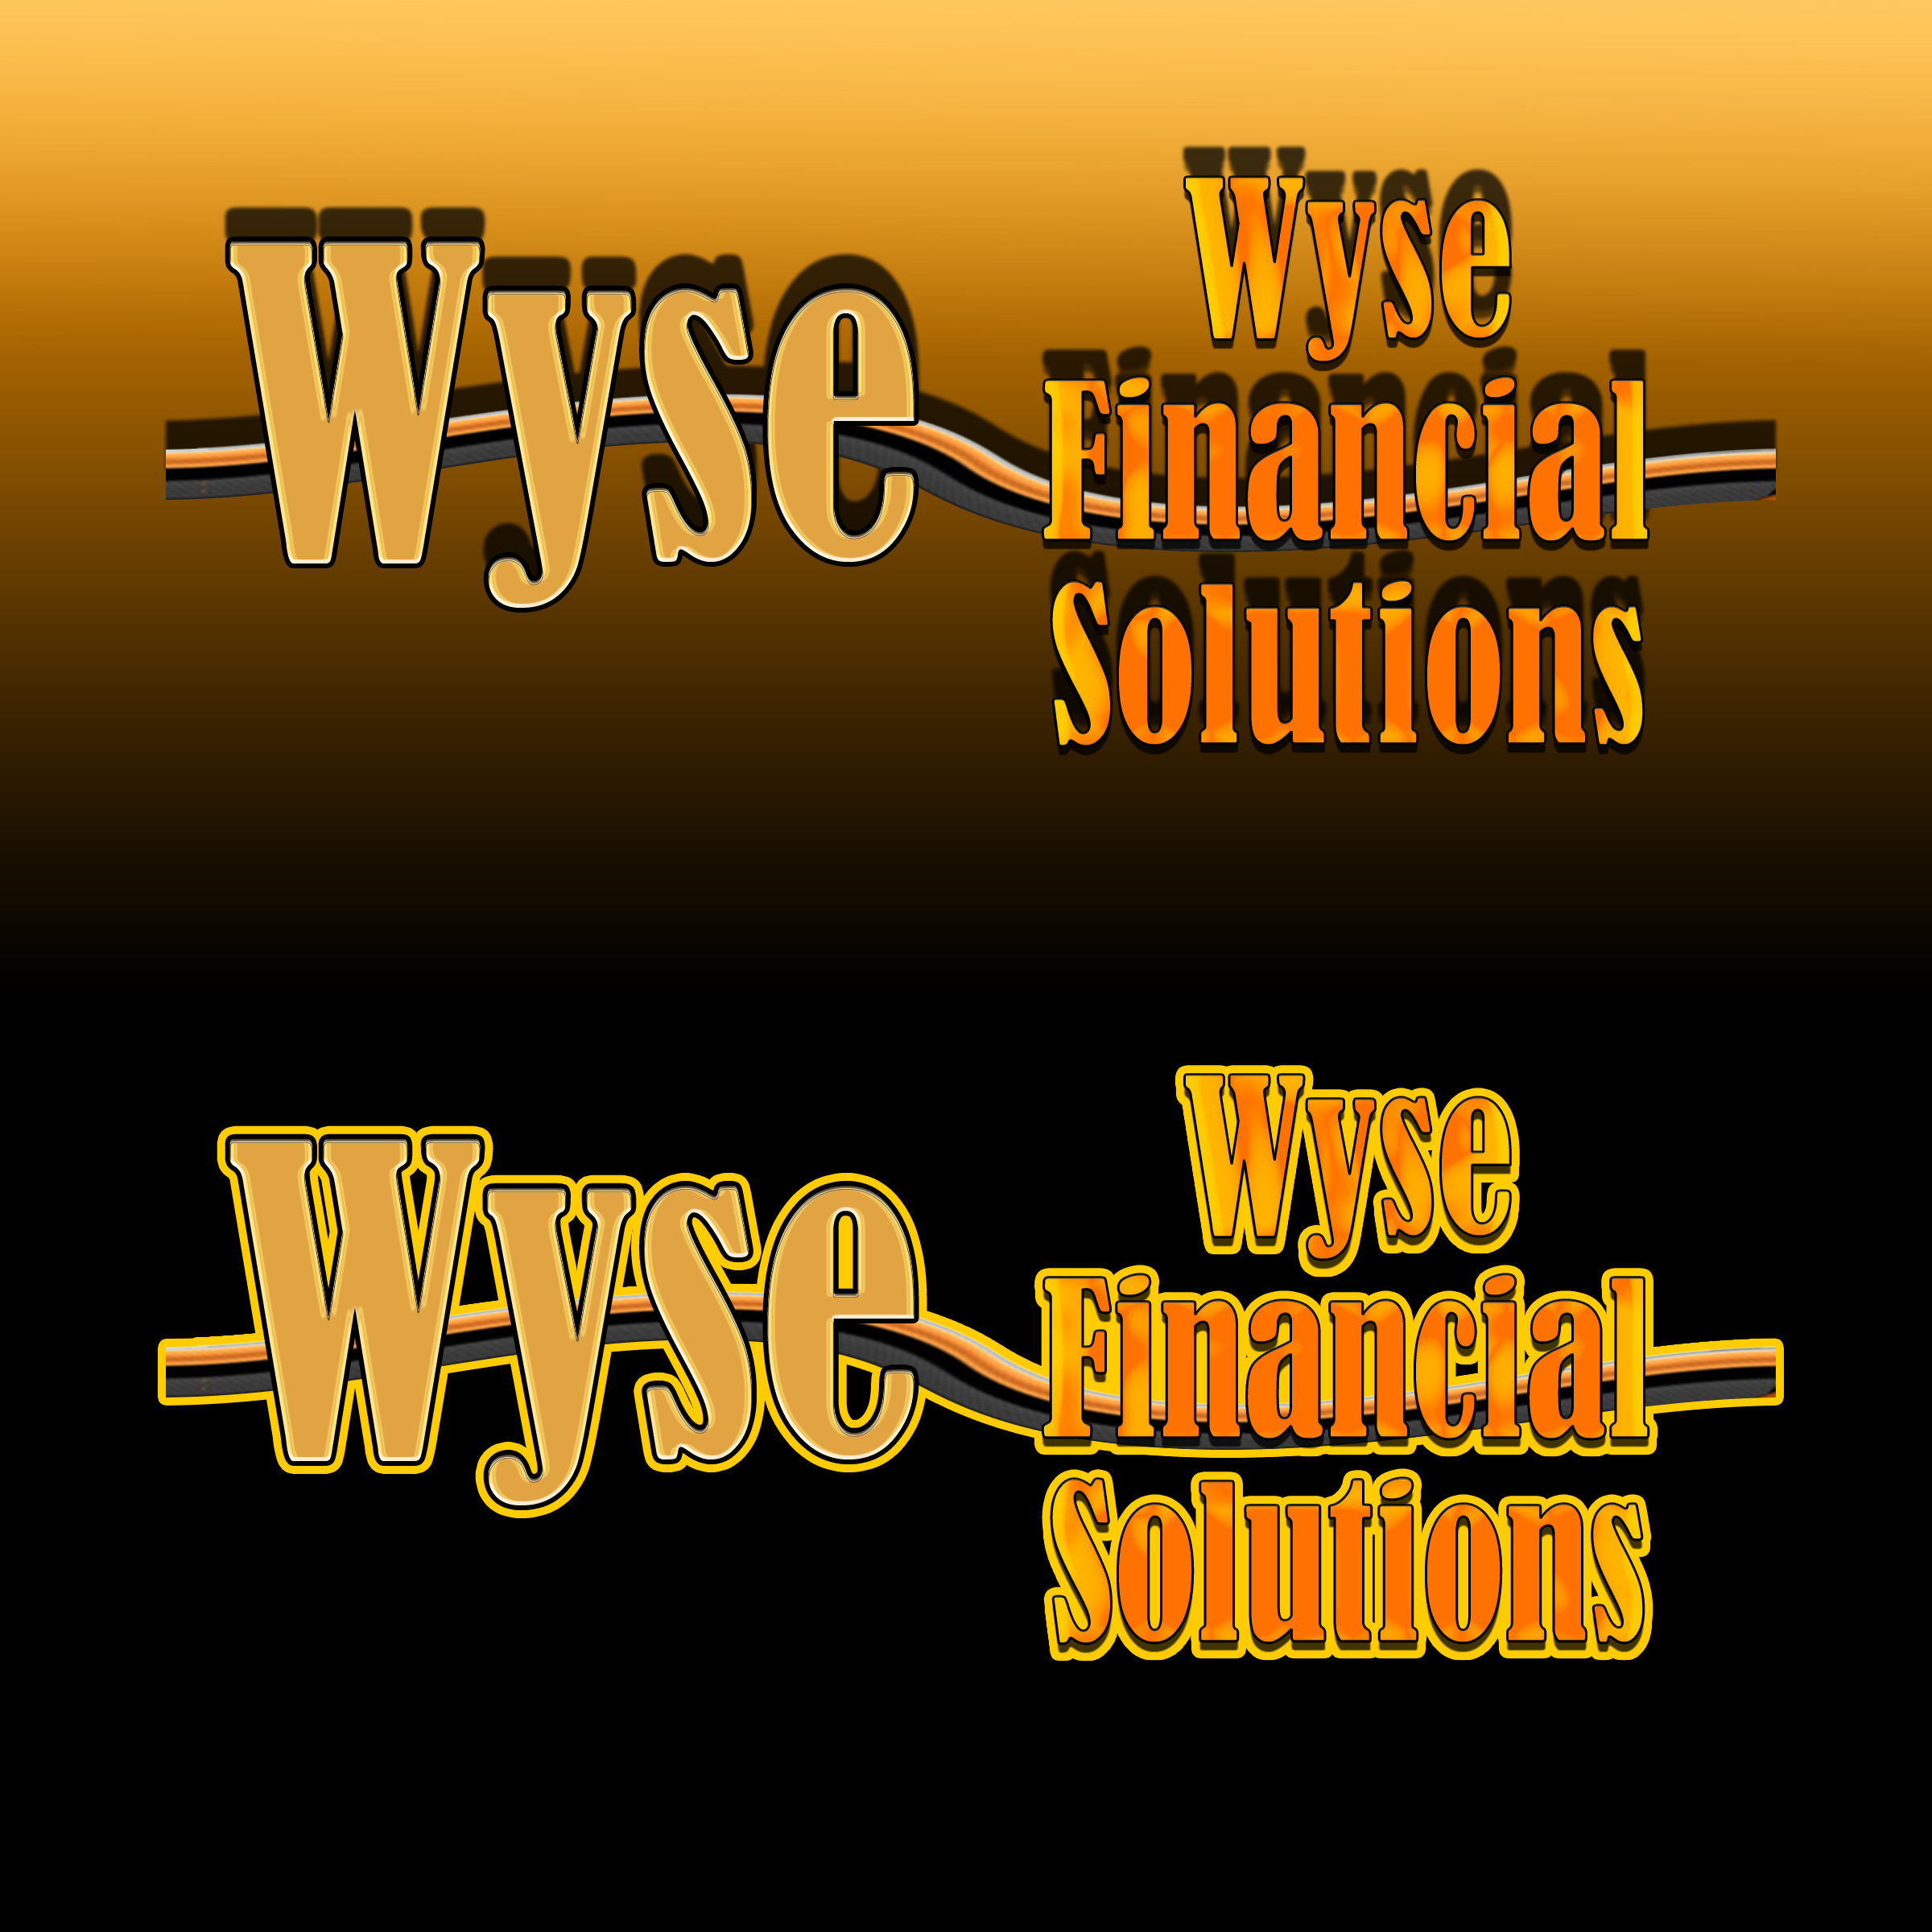 Logo Design by MITUCA ANDREI - Entry No. 20 in the Logo Design Contest Fun Logo Design for Wyse Financial Solutions.